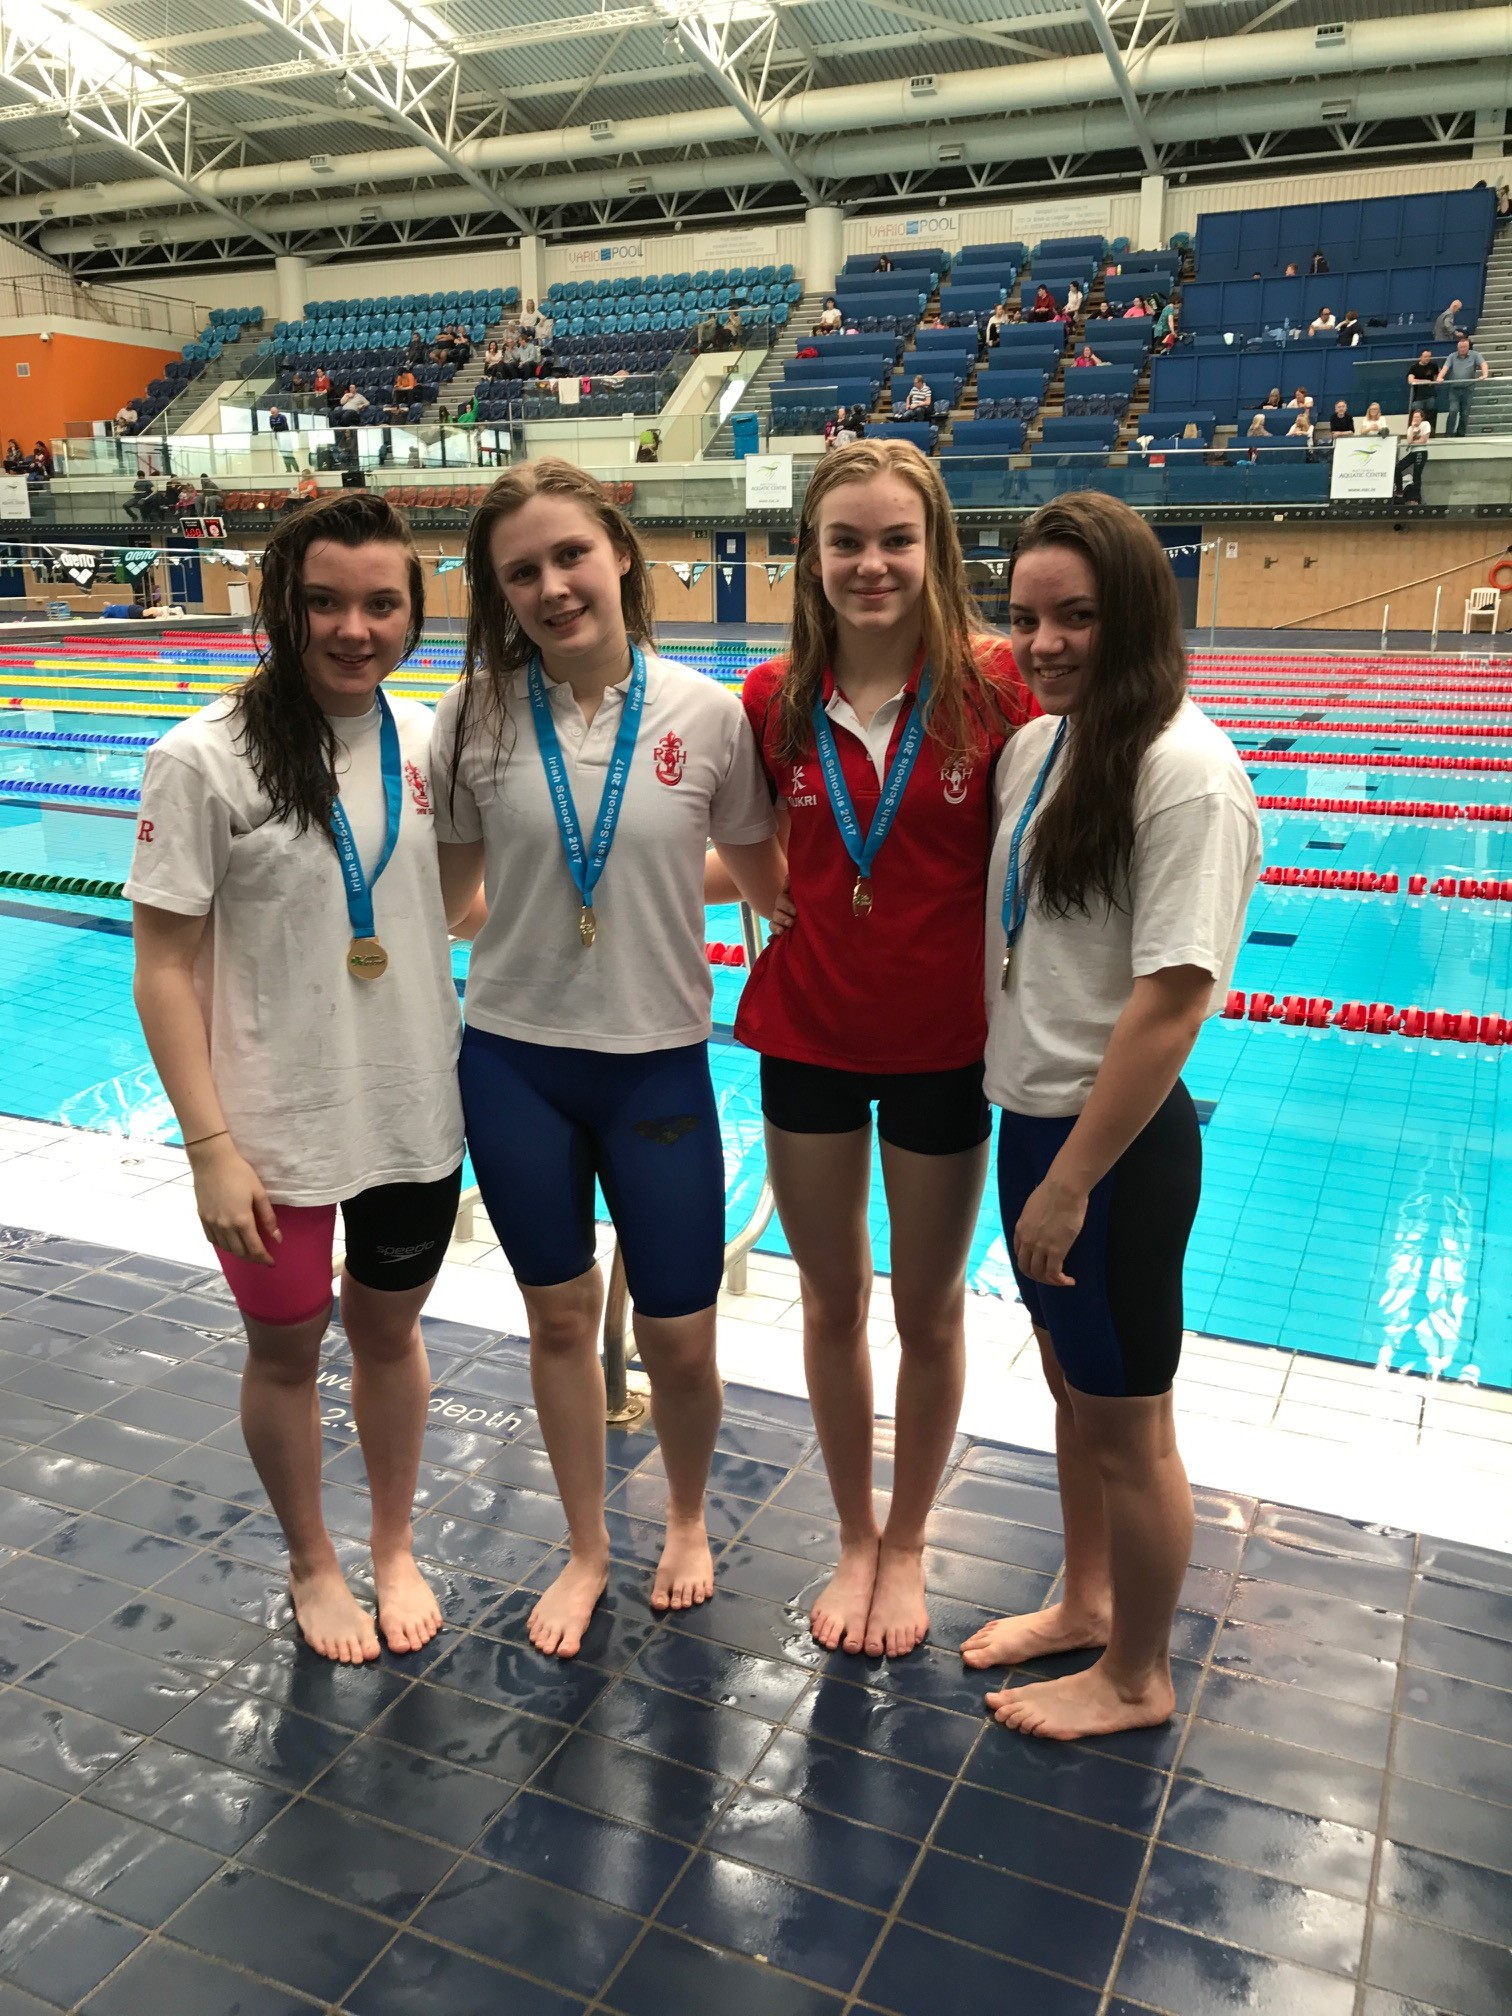 The Senior Girls Relay Team - came 1st in the Medley Team Relay and 1st in the Freestyle Team Relay